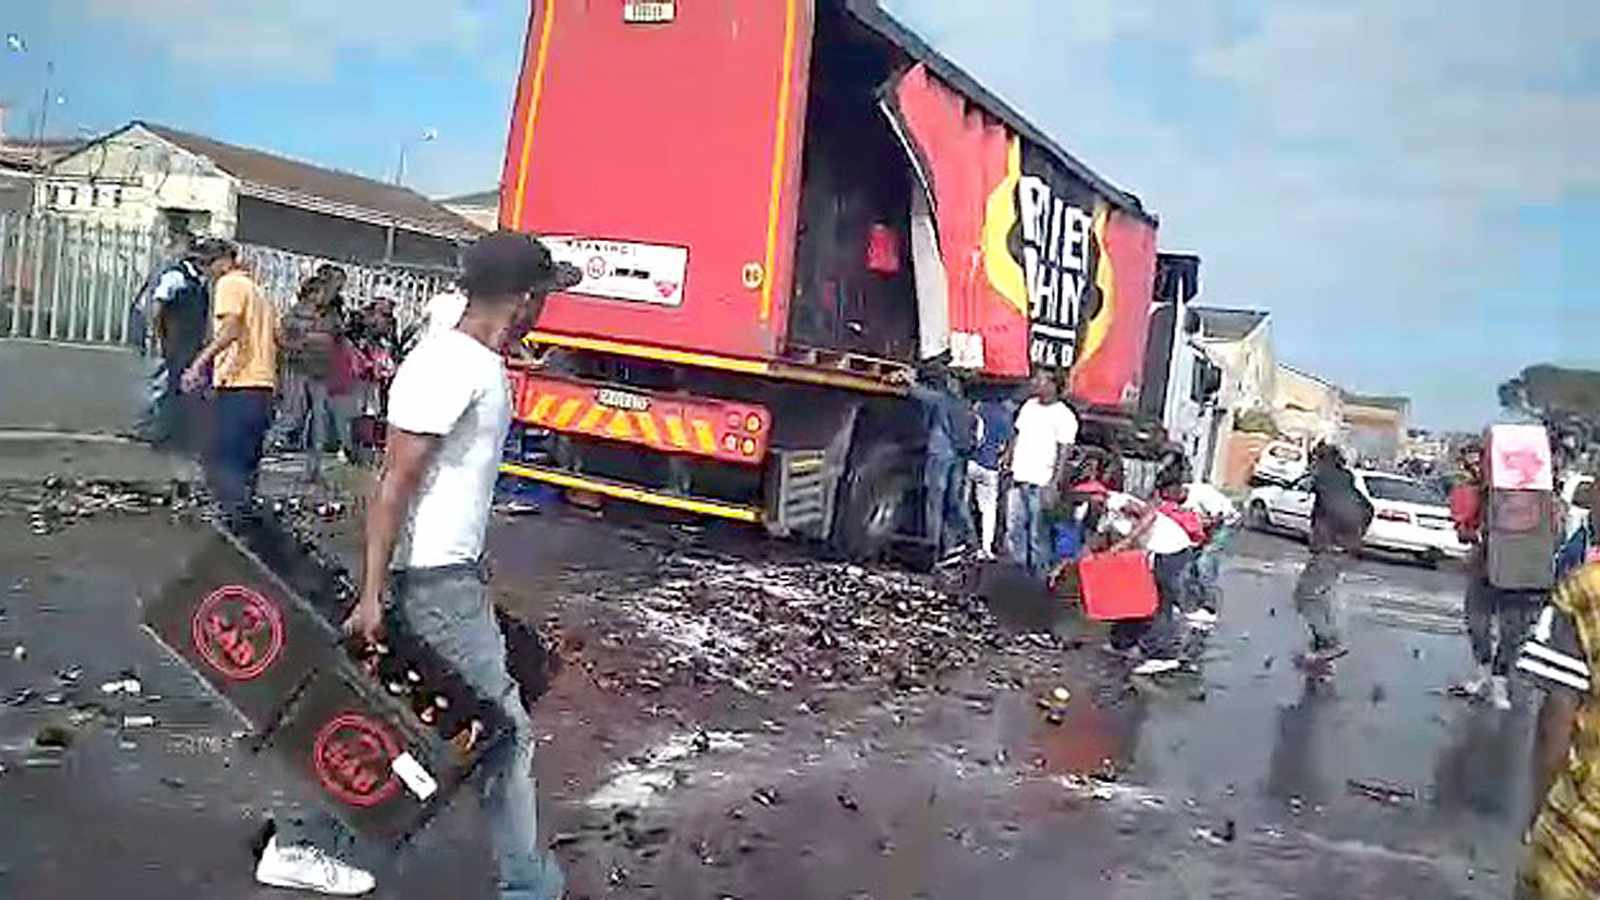 WATCH: Frenzy as beer truck loses load in Mitchells Plain